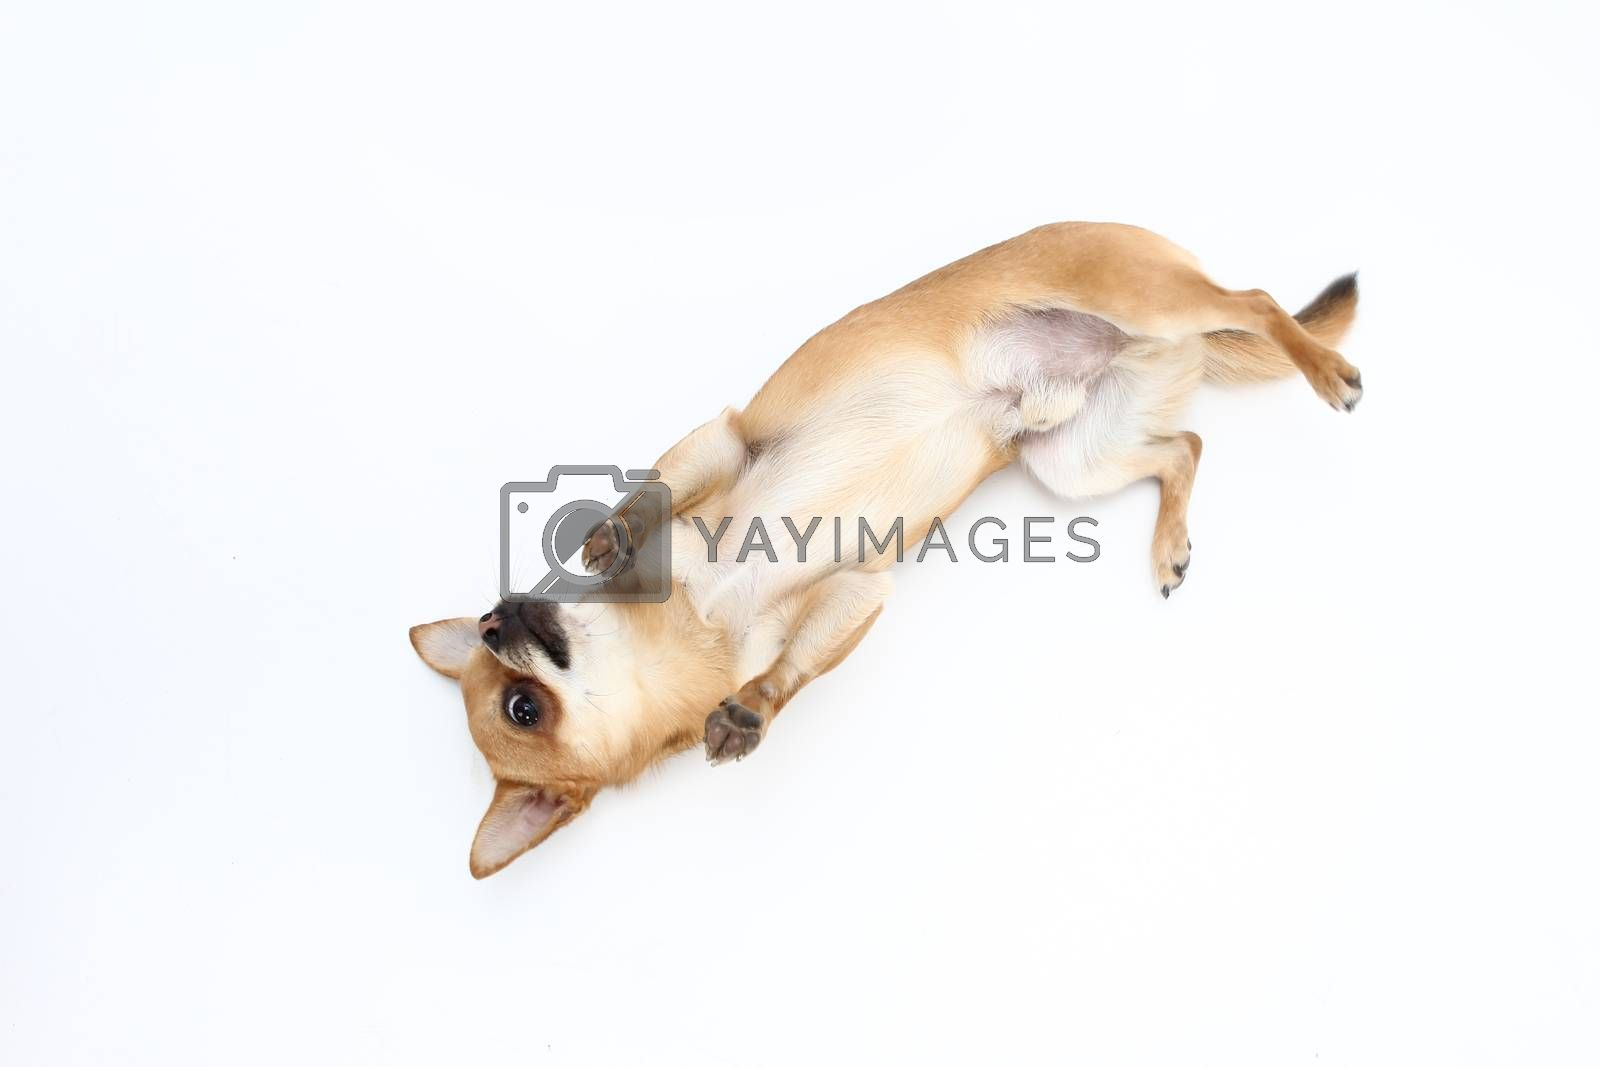 dog on white background playing and showing off his tricks in the photo studio